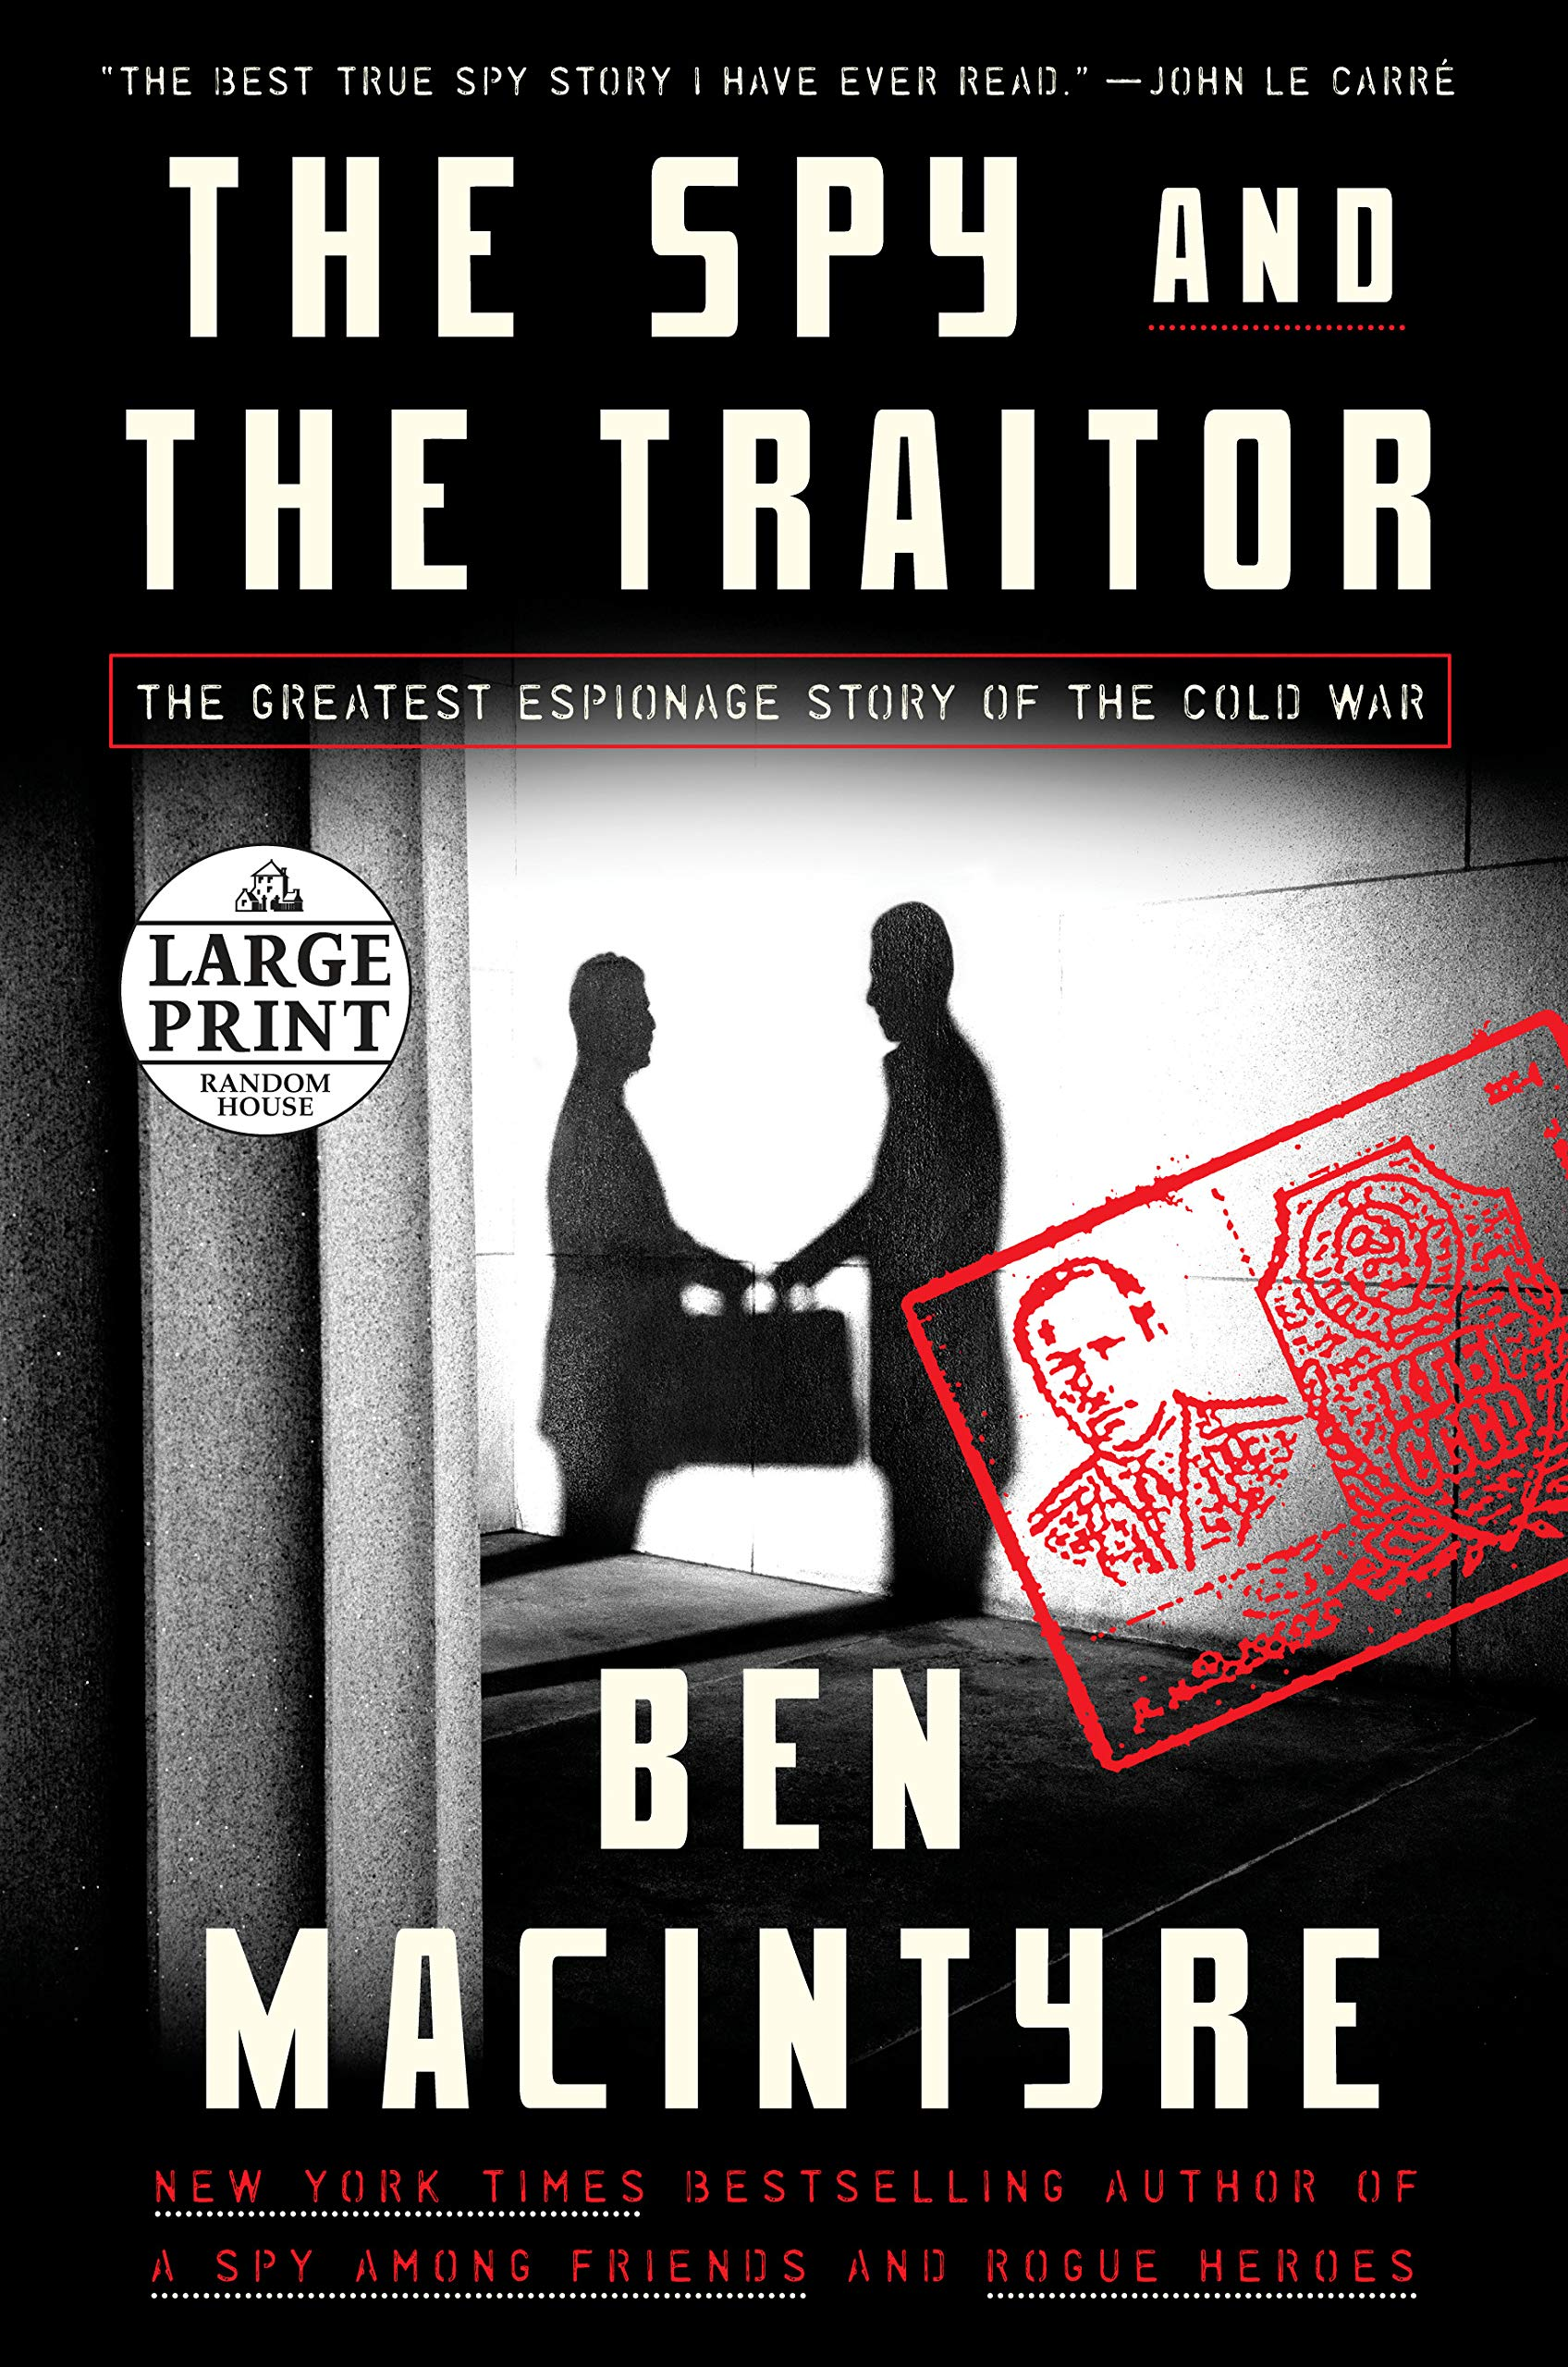 The Spy and the Traitor: The Greatest Espionage Story of the Cold War Paperback – Large Print, September 18, 2018 Ben Macintyre Random House Large Print 198484153X Cold War; Biography.